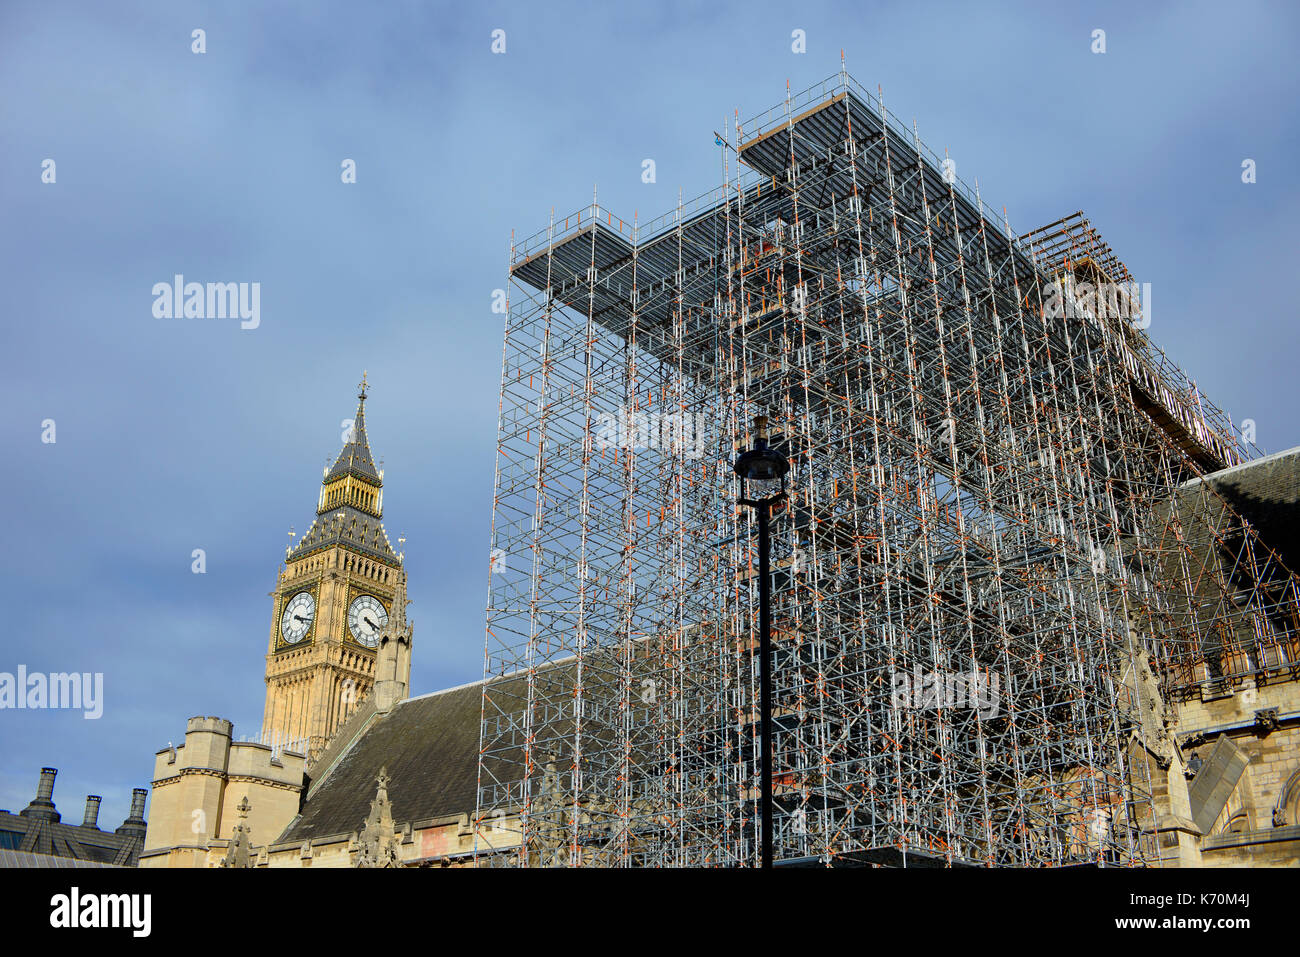 Restoration work in progress on Palace of Westminster Houses of Parliament, London, UK. Restoration and Renewal Programme. Scaffolding. - Stock Image